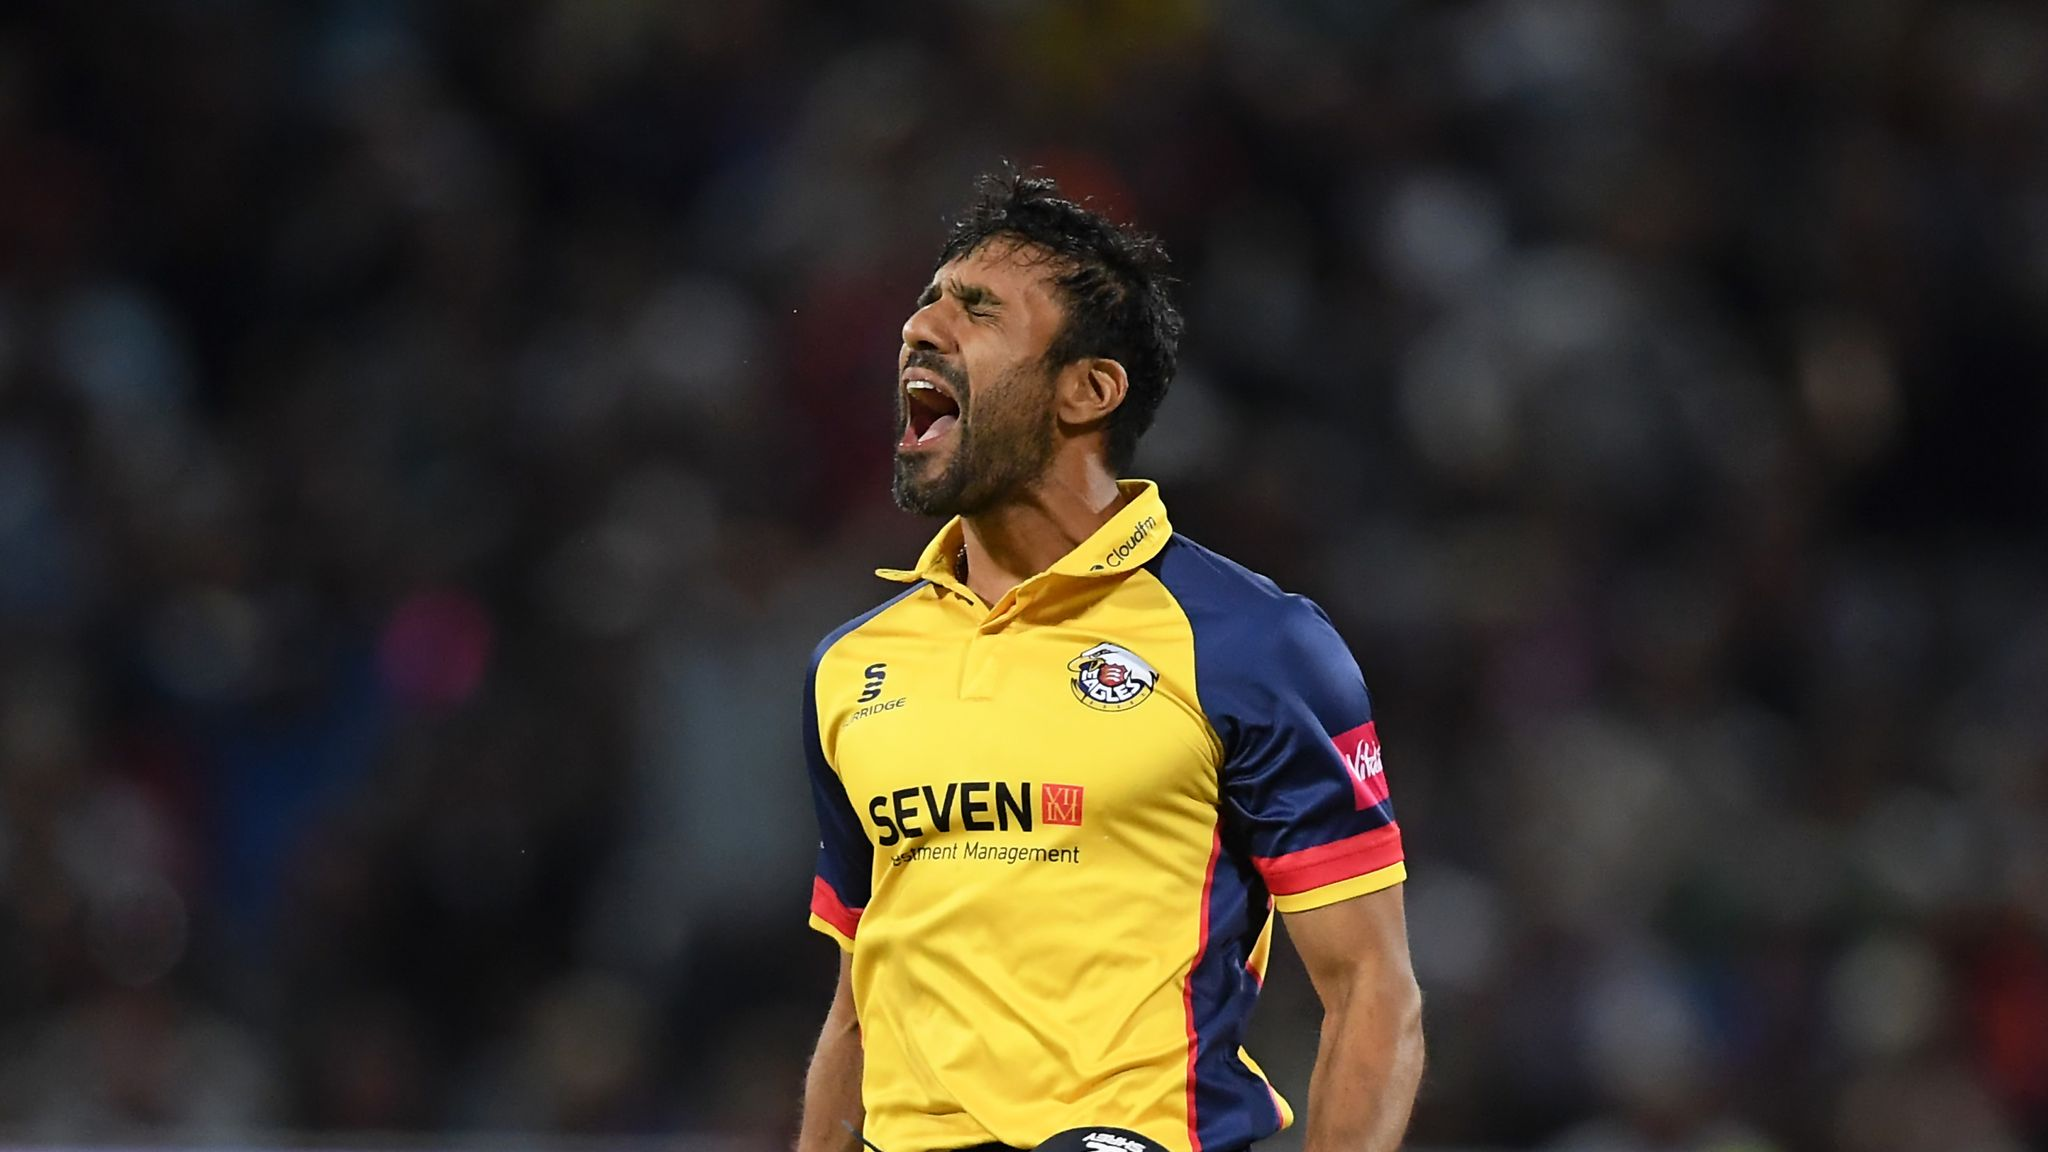 Ravi Bopara says Essex's first T20 title success 'means everything'